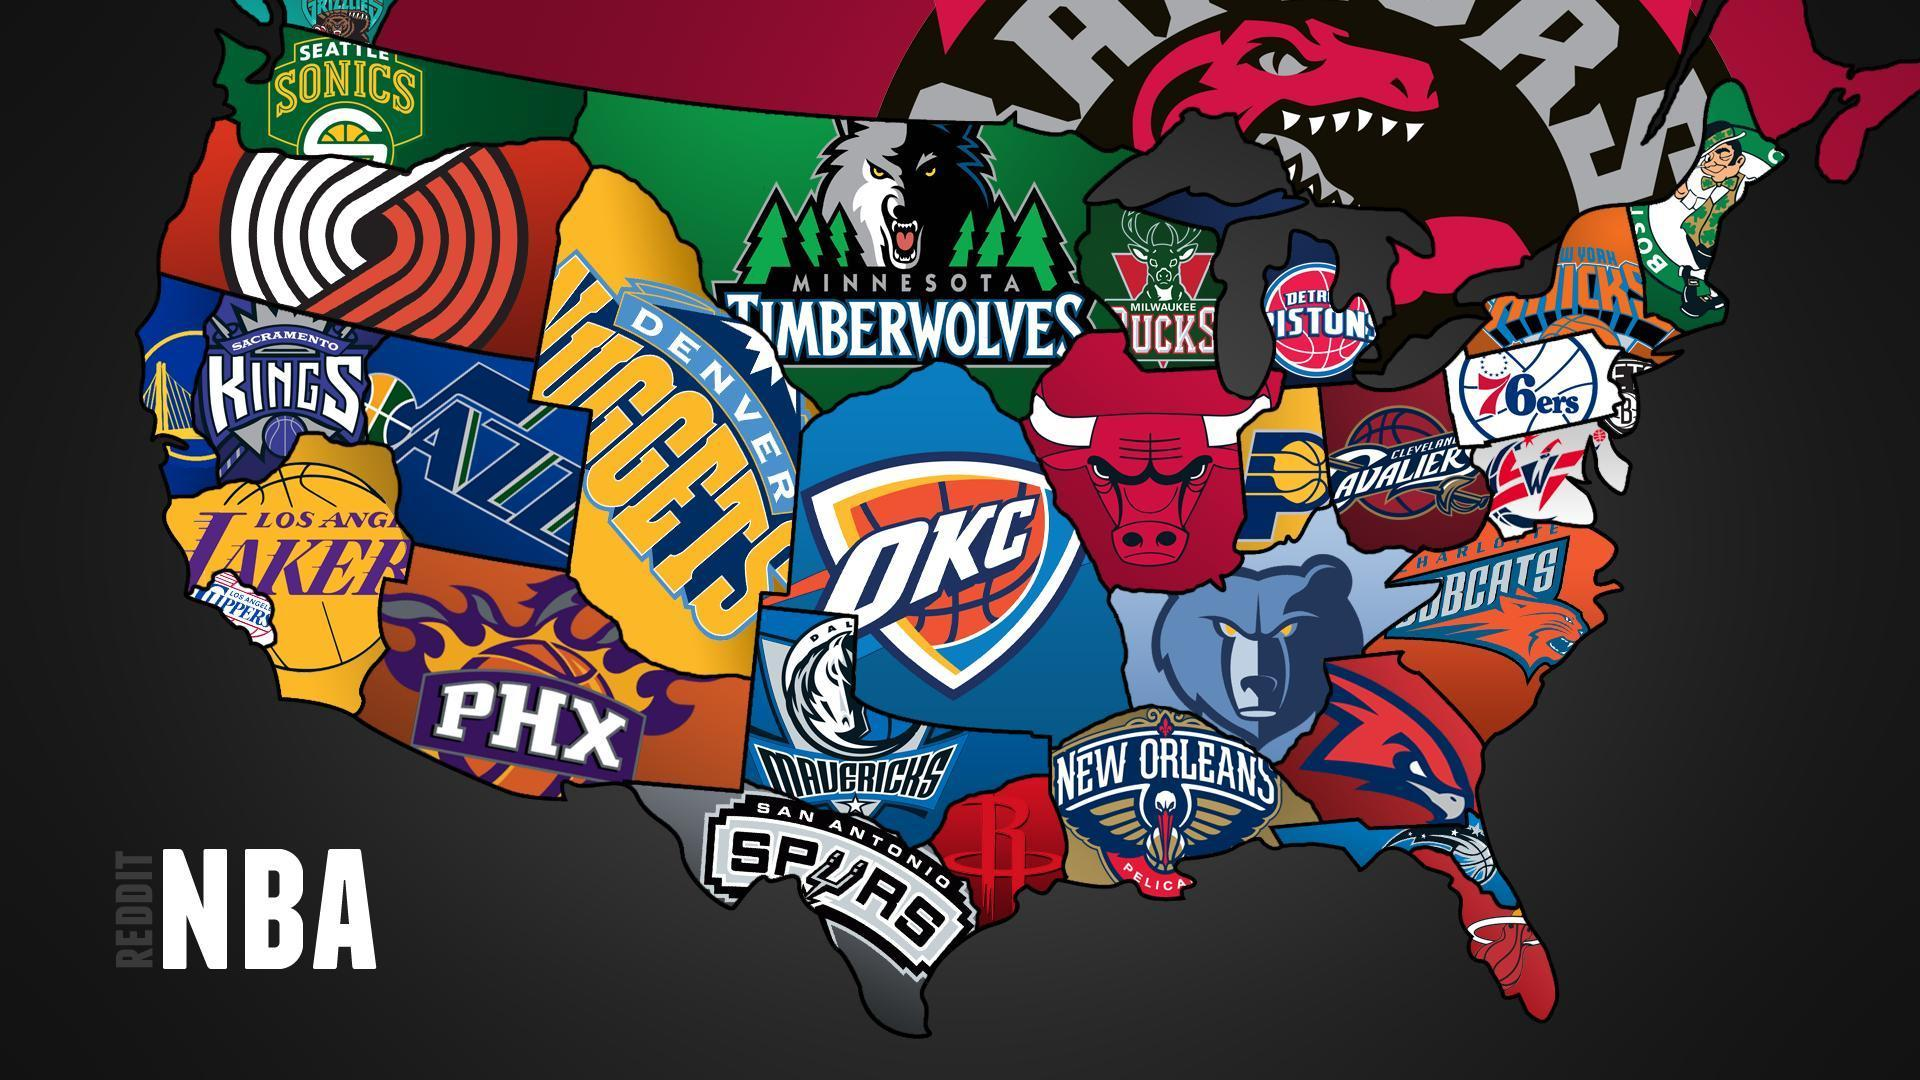 Cool map of NBA teams 1920x1080 Full HD 169 Wallpaper 1772 on 1920x1080